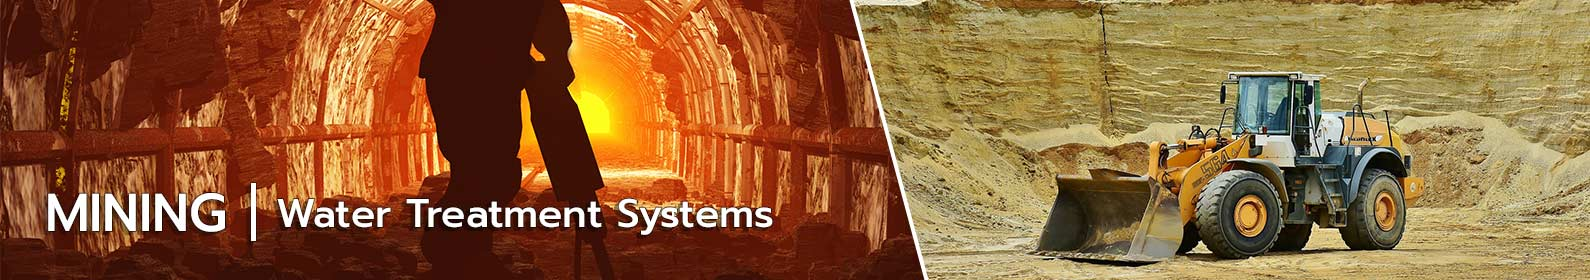 water treatment systems for mining industry